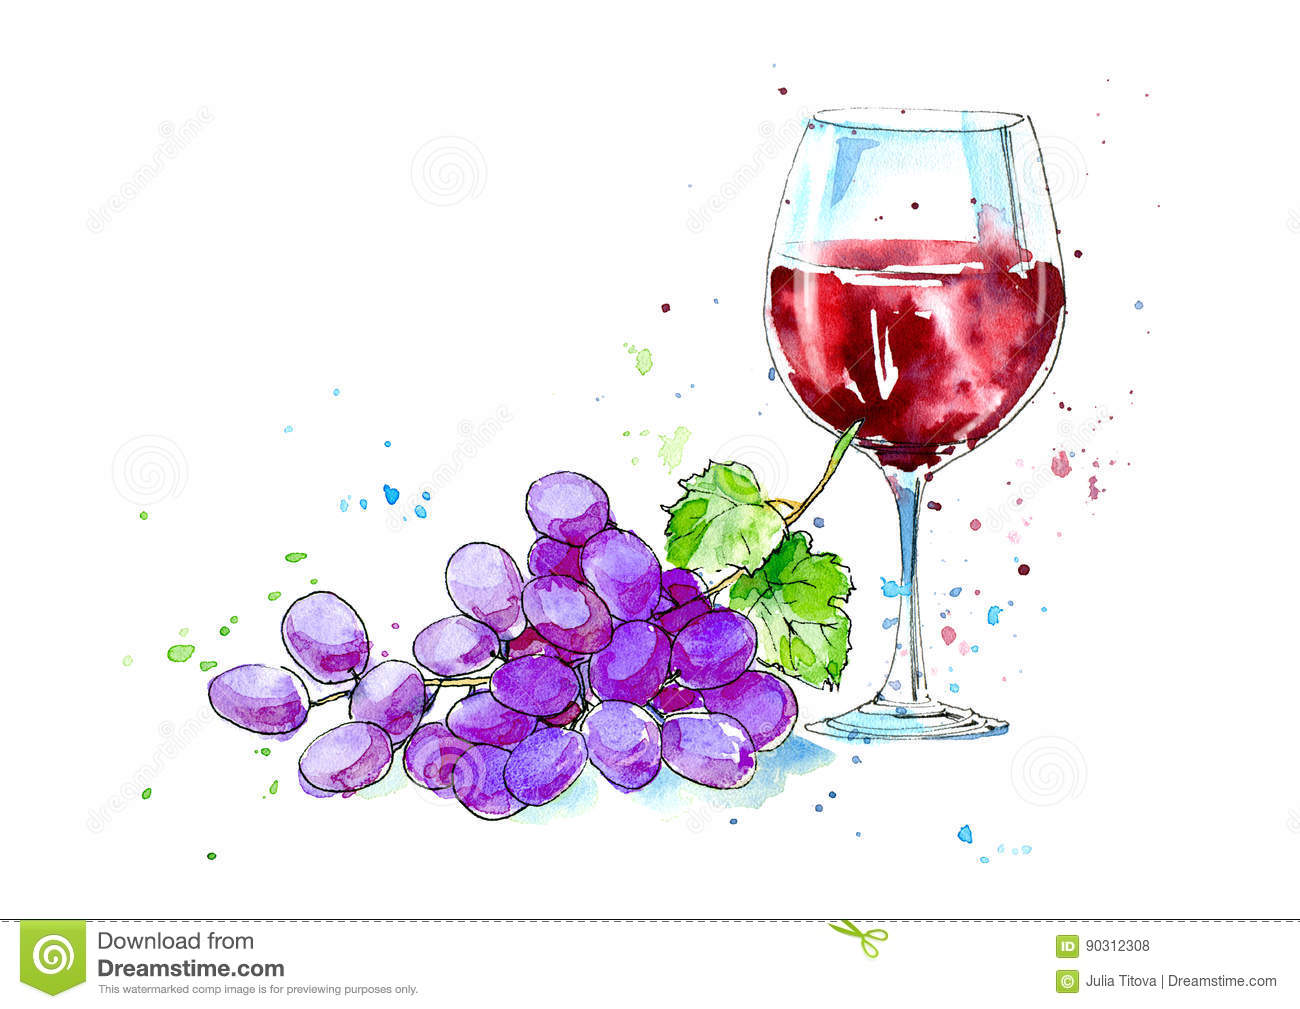 Glass of a red wine and grapes.